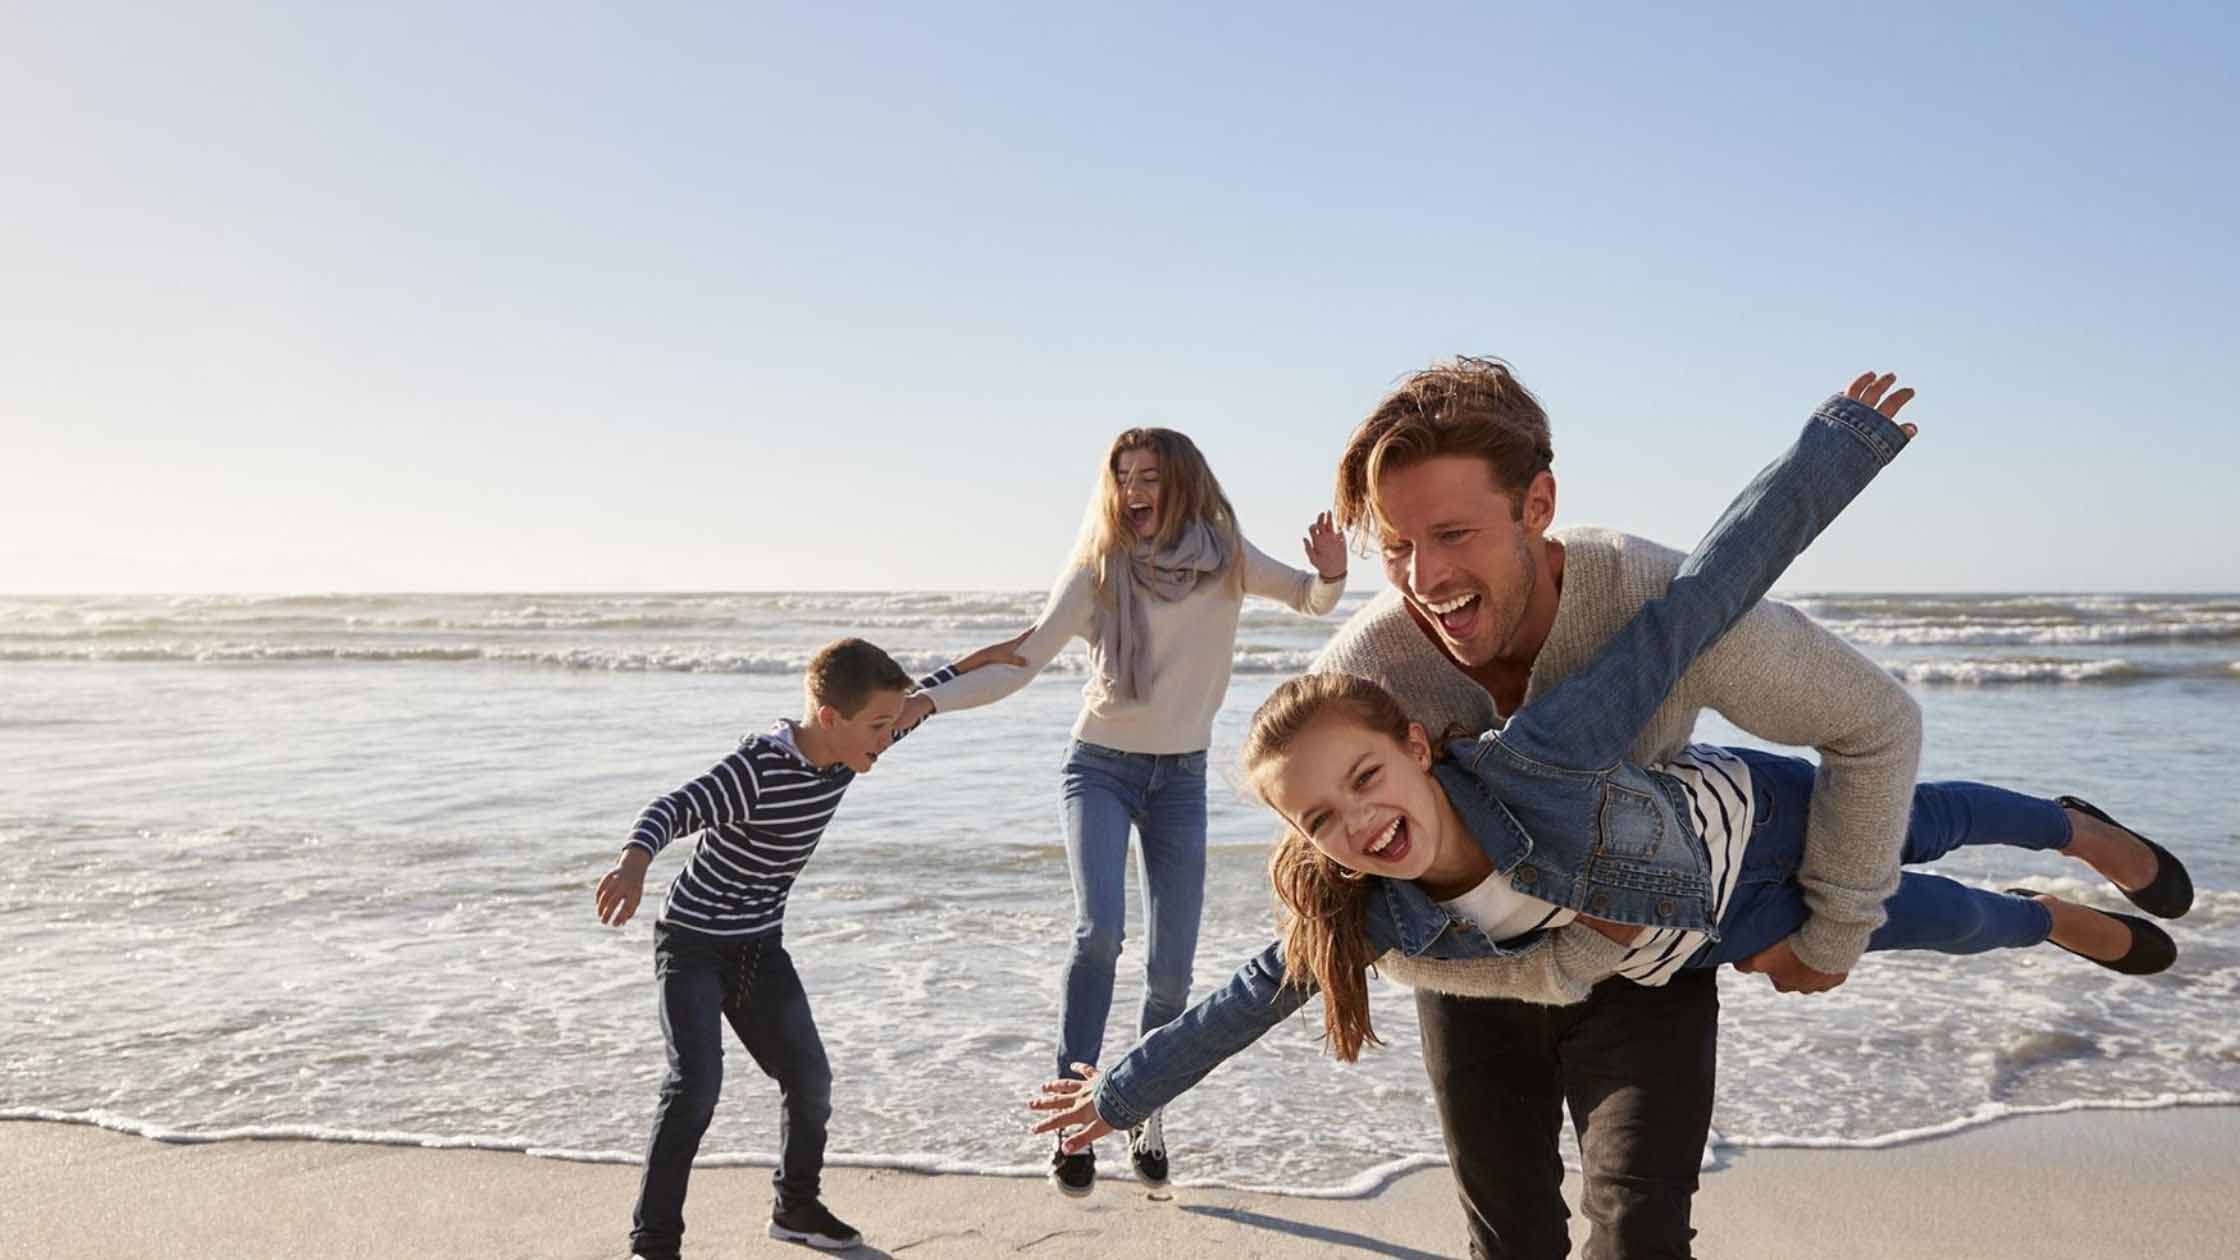 8 Things to Spend Quality Time with Family